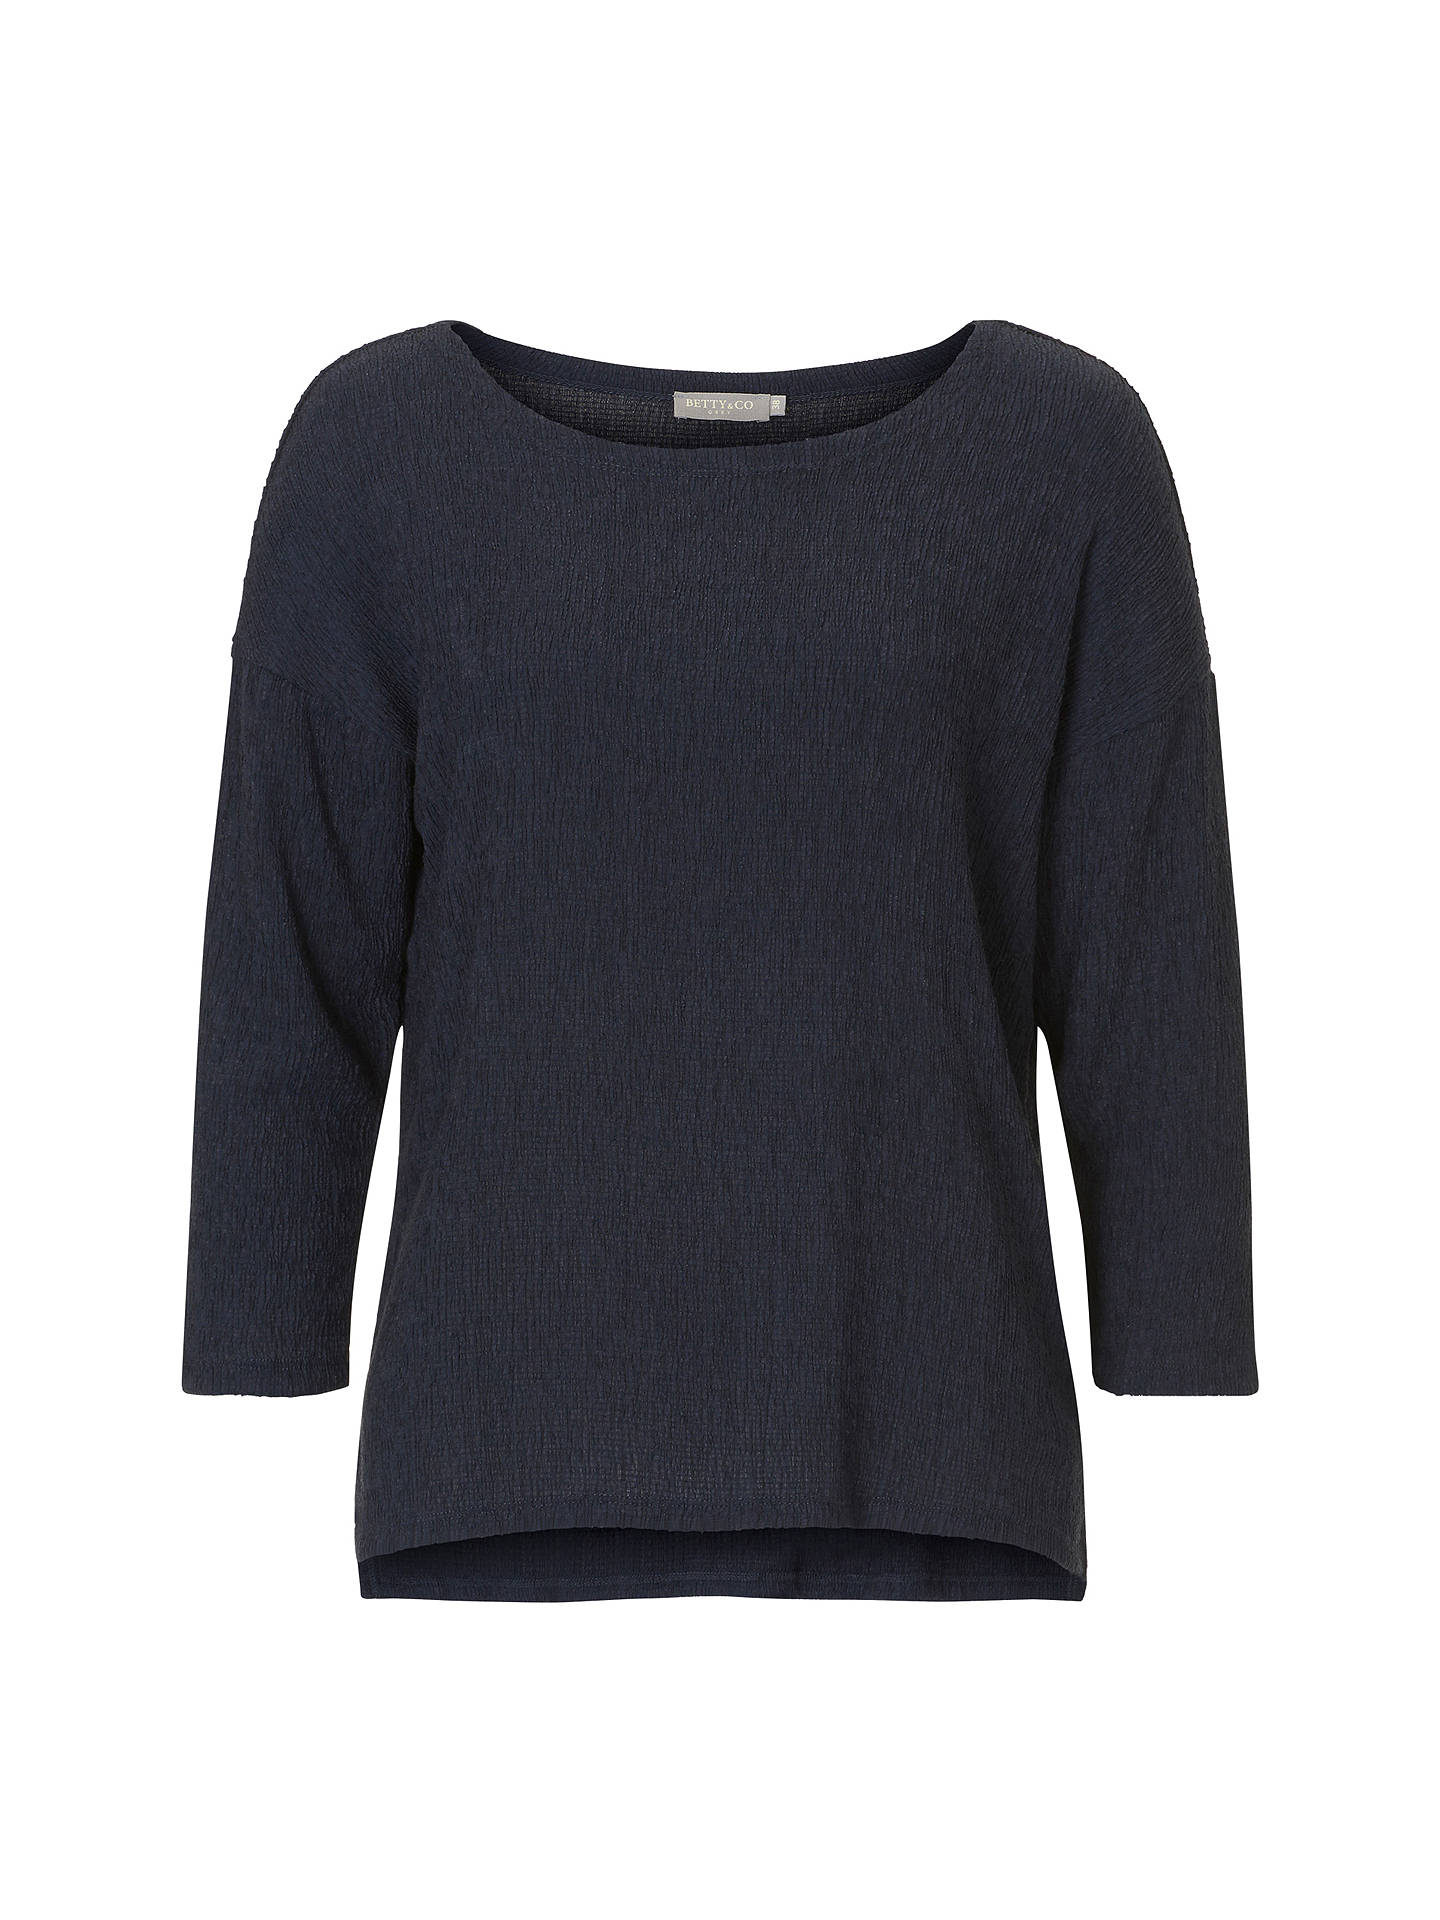 BuyBetty & Co. Textured Top, Mood Blue, 10 Online at johnlewis.com